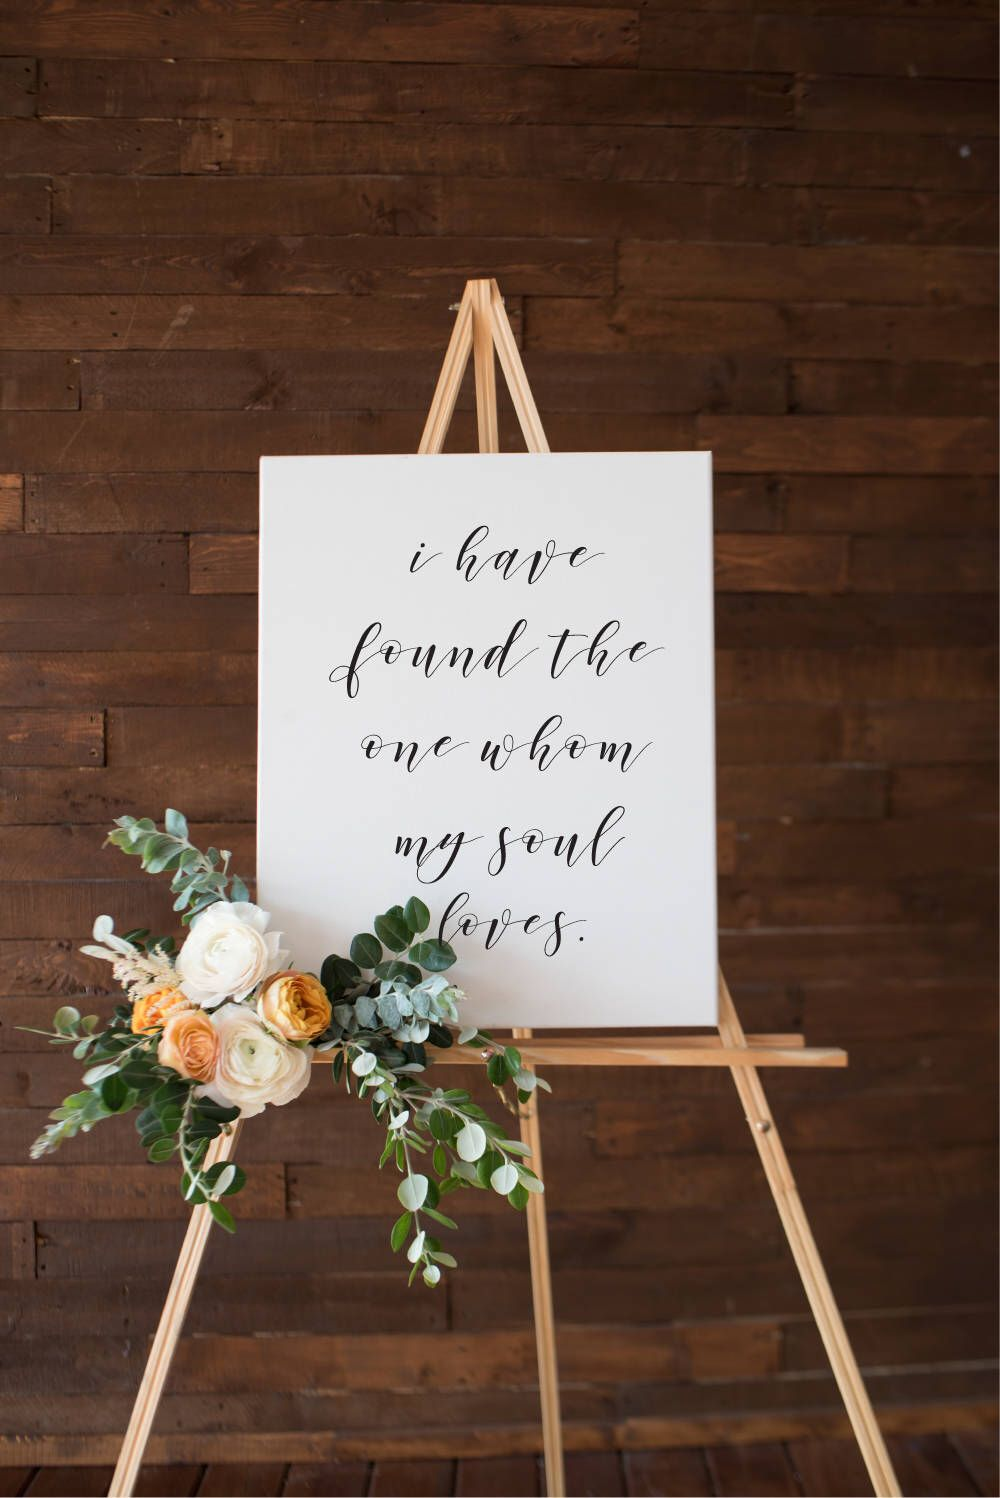 Trendy Geometric Wedding Ideas for Modern Brides  Geometric